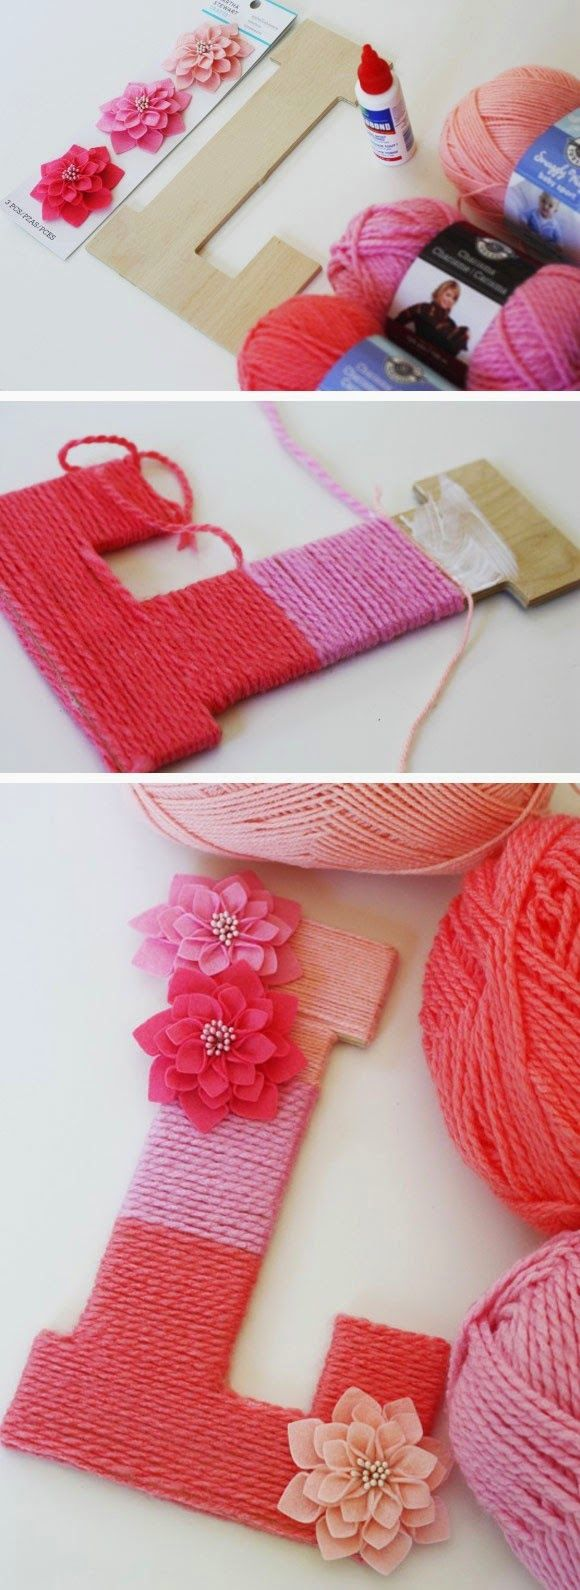 Wrap Yarn Around A Letter Made Out A Wood Letter For A Cute Sign In